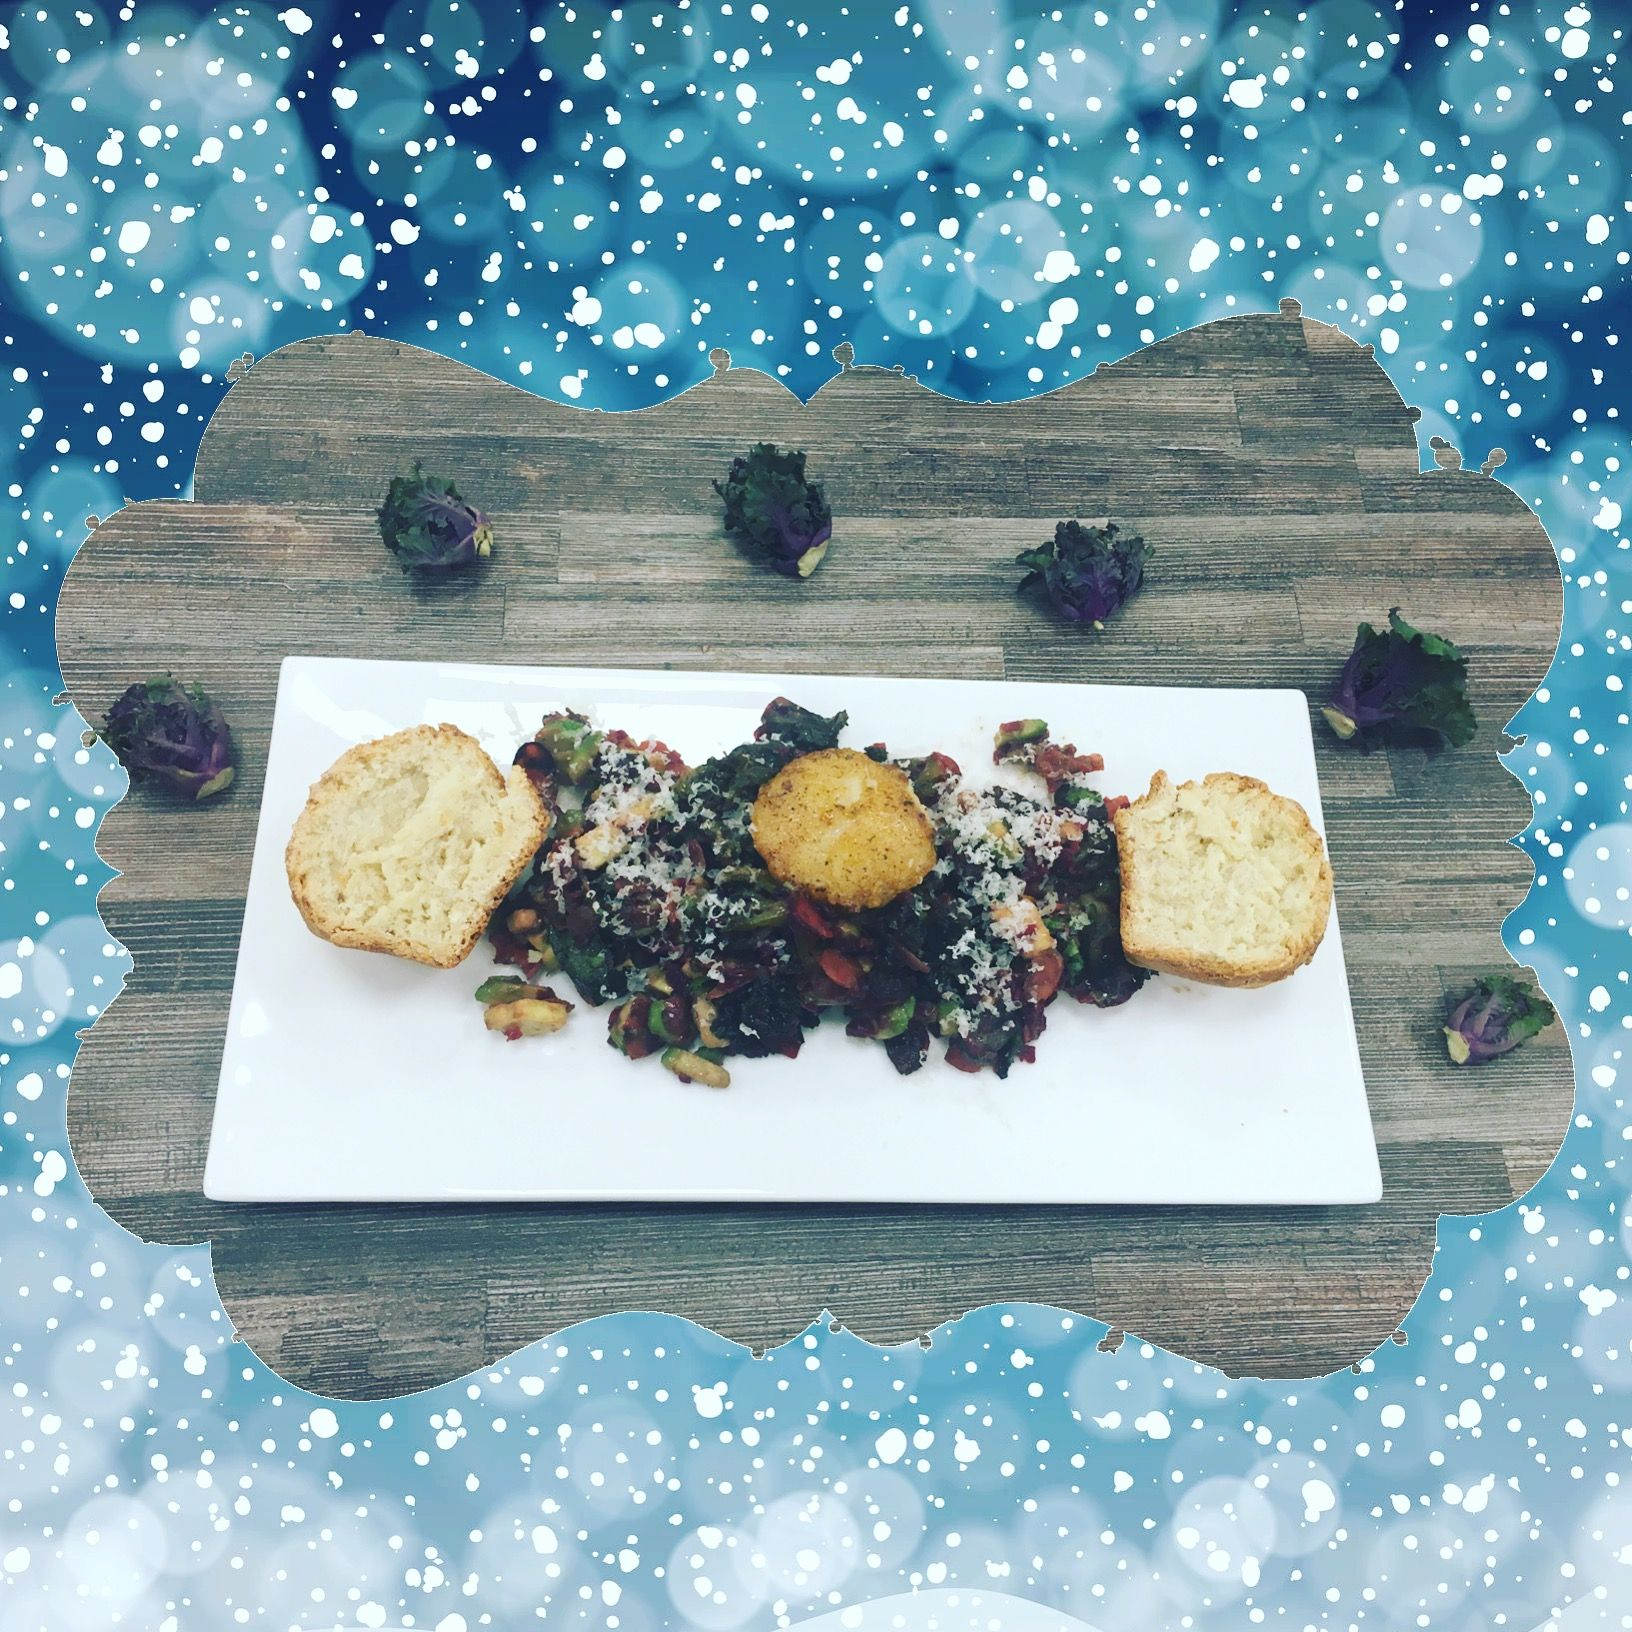 Enjoy this cold day with kalettes find out here our